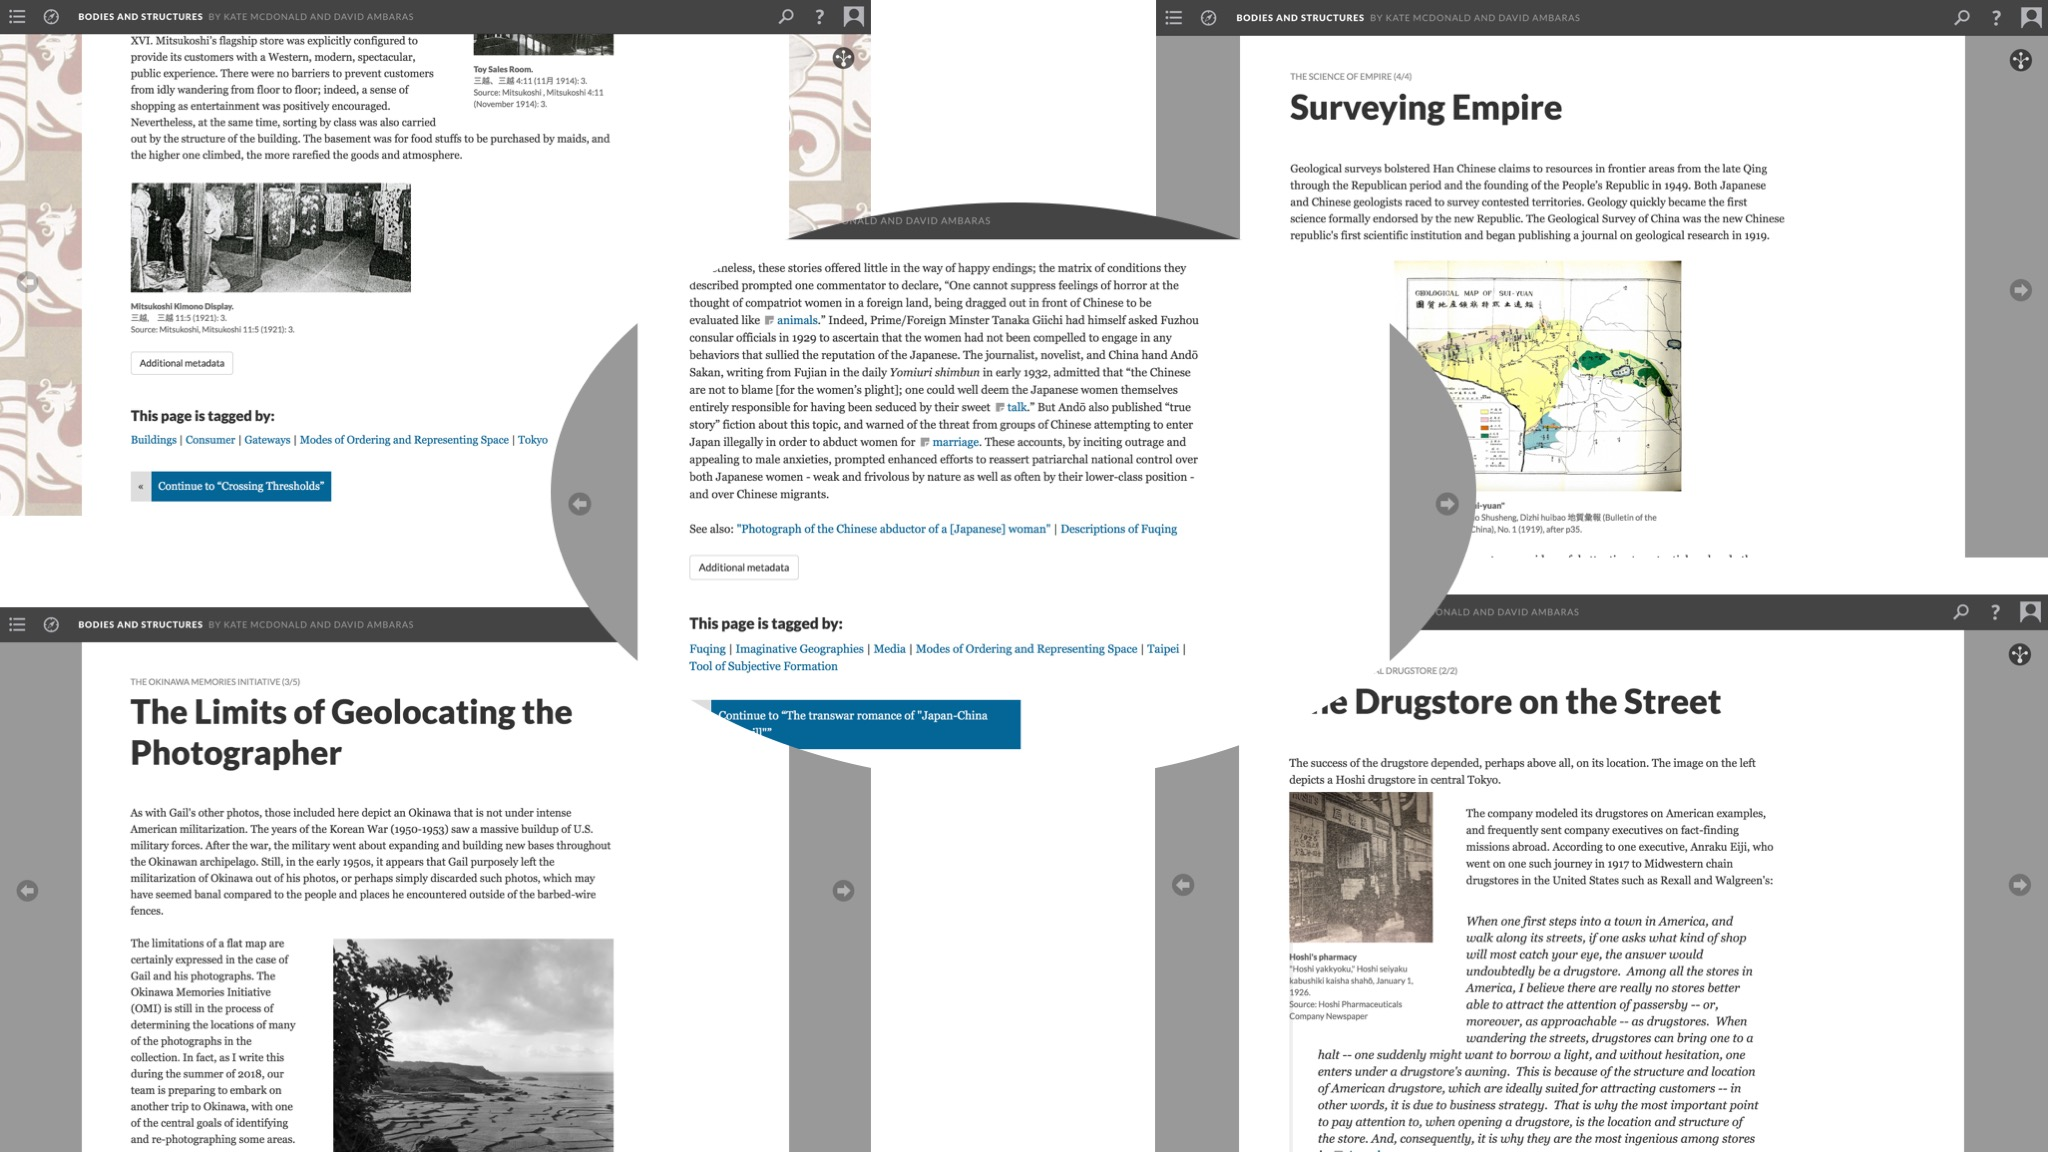 """Figure 5. Using tag relationships to explore how events and actors construct and reconstruct places and their meanings within shifting imperial contexts. The tag """"Modes of Ordering and Representing Space"""" in David Ambaras's page on """"abduction-captivity narratives centered on Fuqing"""" (center) connects users to other similarly tagged pages. From upper left to bottom right: Noriko Aso's """"Gateway to Western Wonders,"""" Shellen Wu's """"Surveying Empire,"""" Dustin Wright's """"The Limits of Geolocating the Photographer,"""" and Timothy Yang's """"The Drugstore on the Street."""" May 1, 2019. Credit: David R. Ambaras and Kate McDonald."""